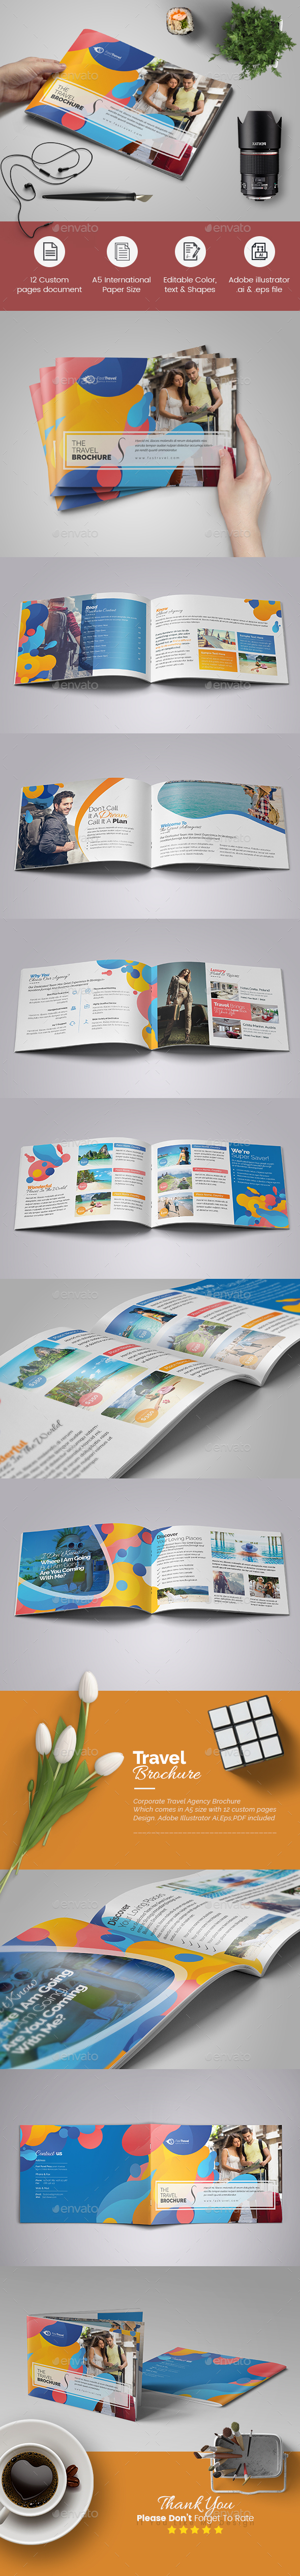 A5 Travel Agency Brochure - Corporate Brochures